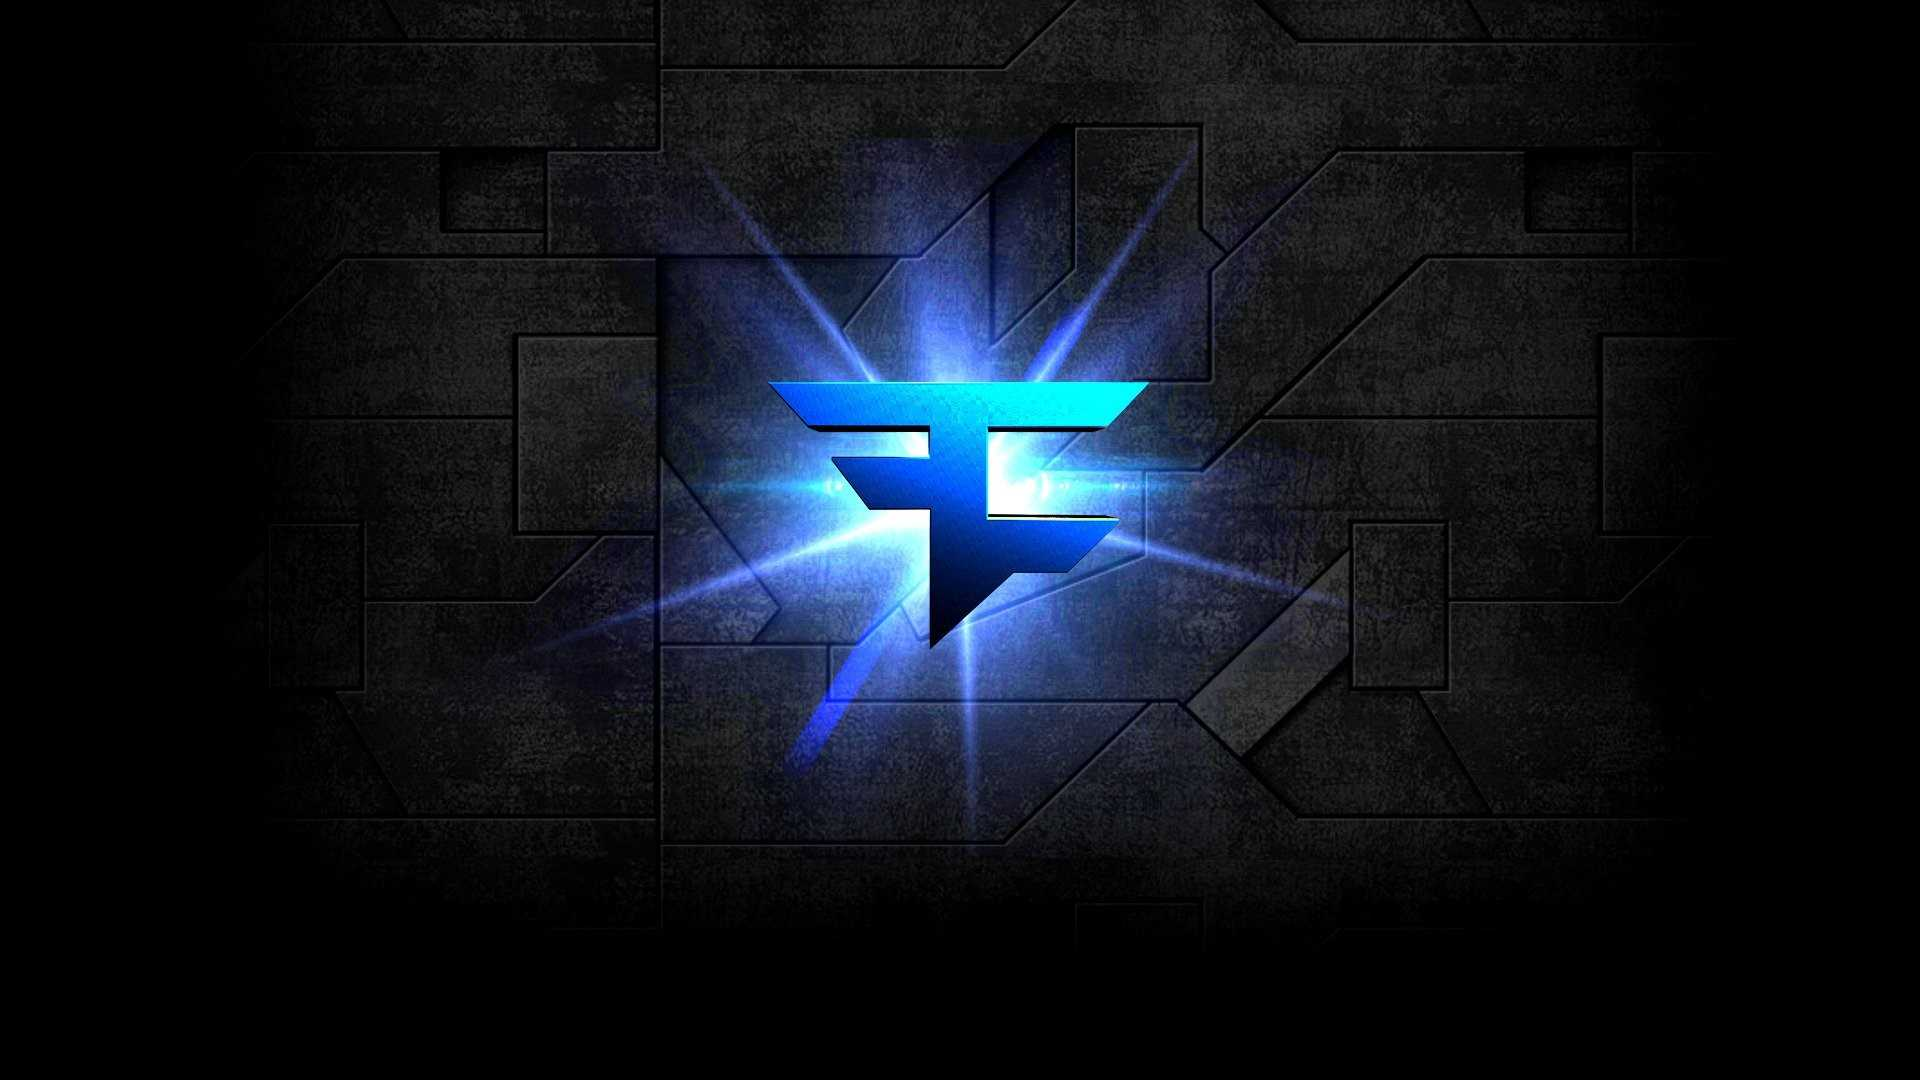 Faze Adapt Wallpapers